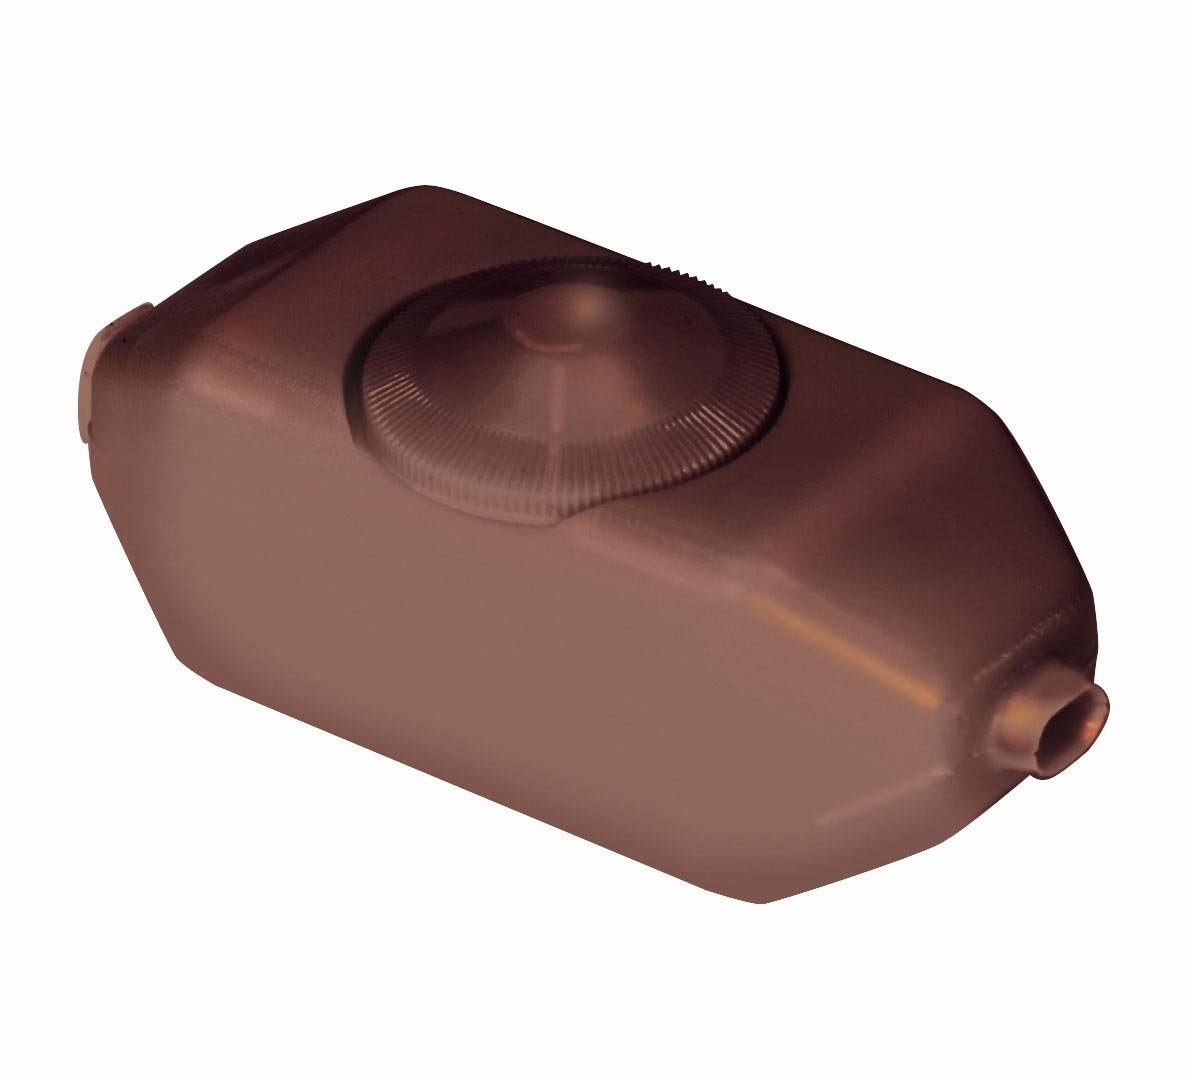 Leviton 6250-3 200W Incandescent Feed-Through Full Range Lamp Cord Dimmer, Single-Pole, Brown